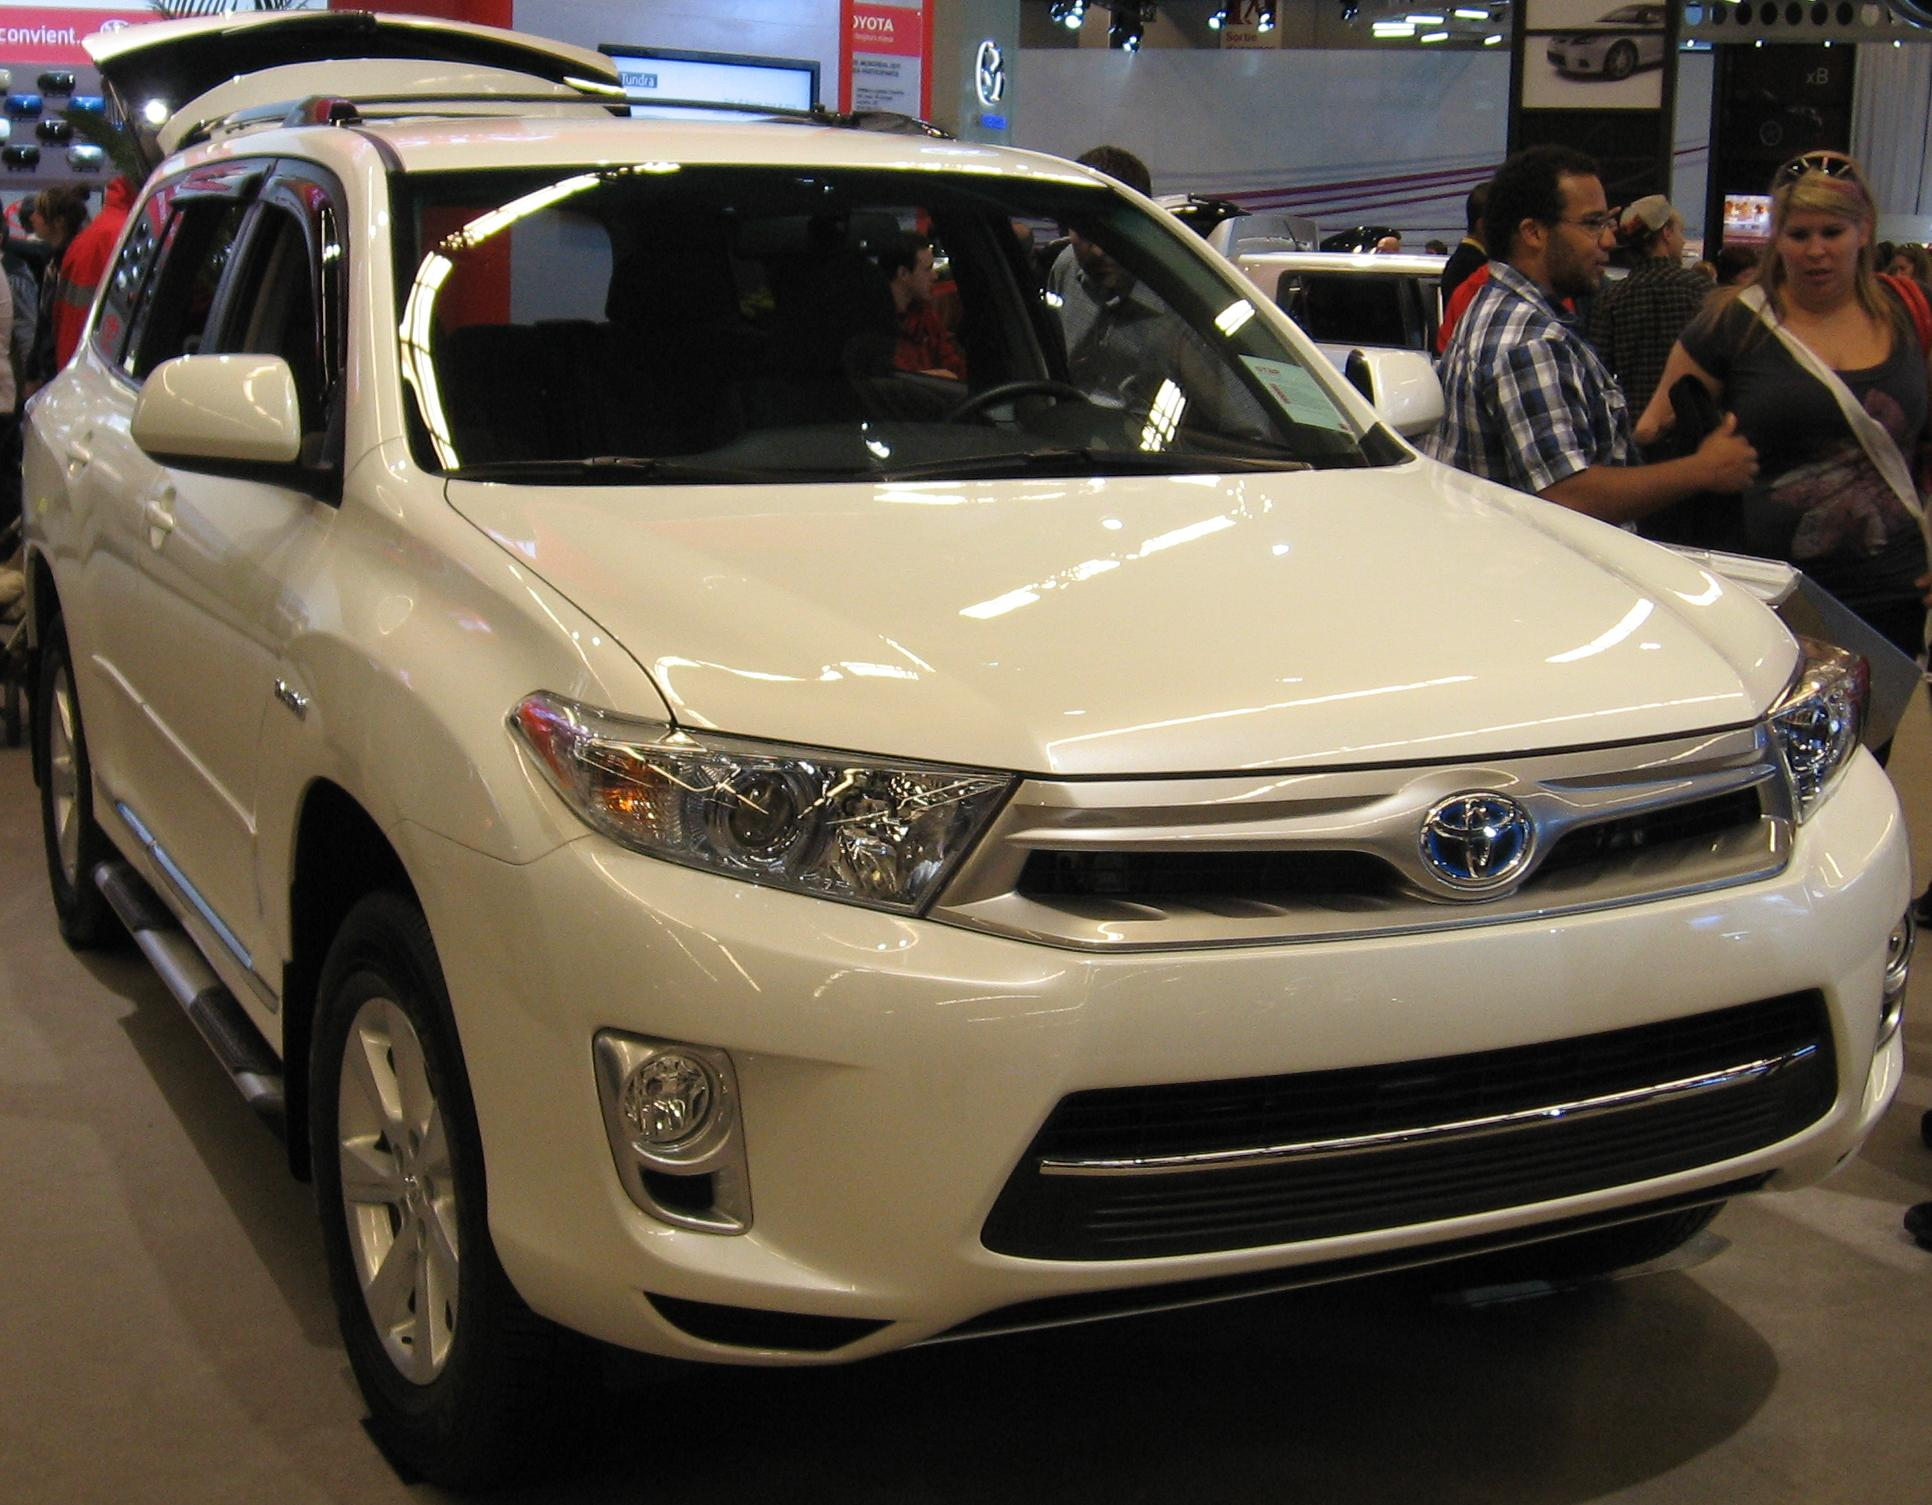 2015 toyota highlander hybrid for comfortable driving review car 2015. Black Bedroom Furniture Sets. Home Design Ideas